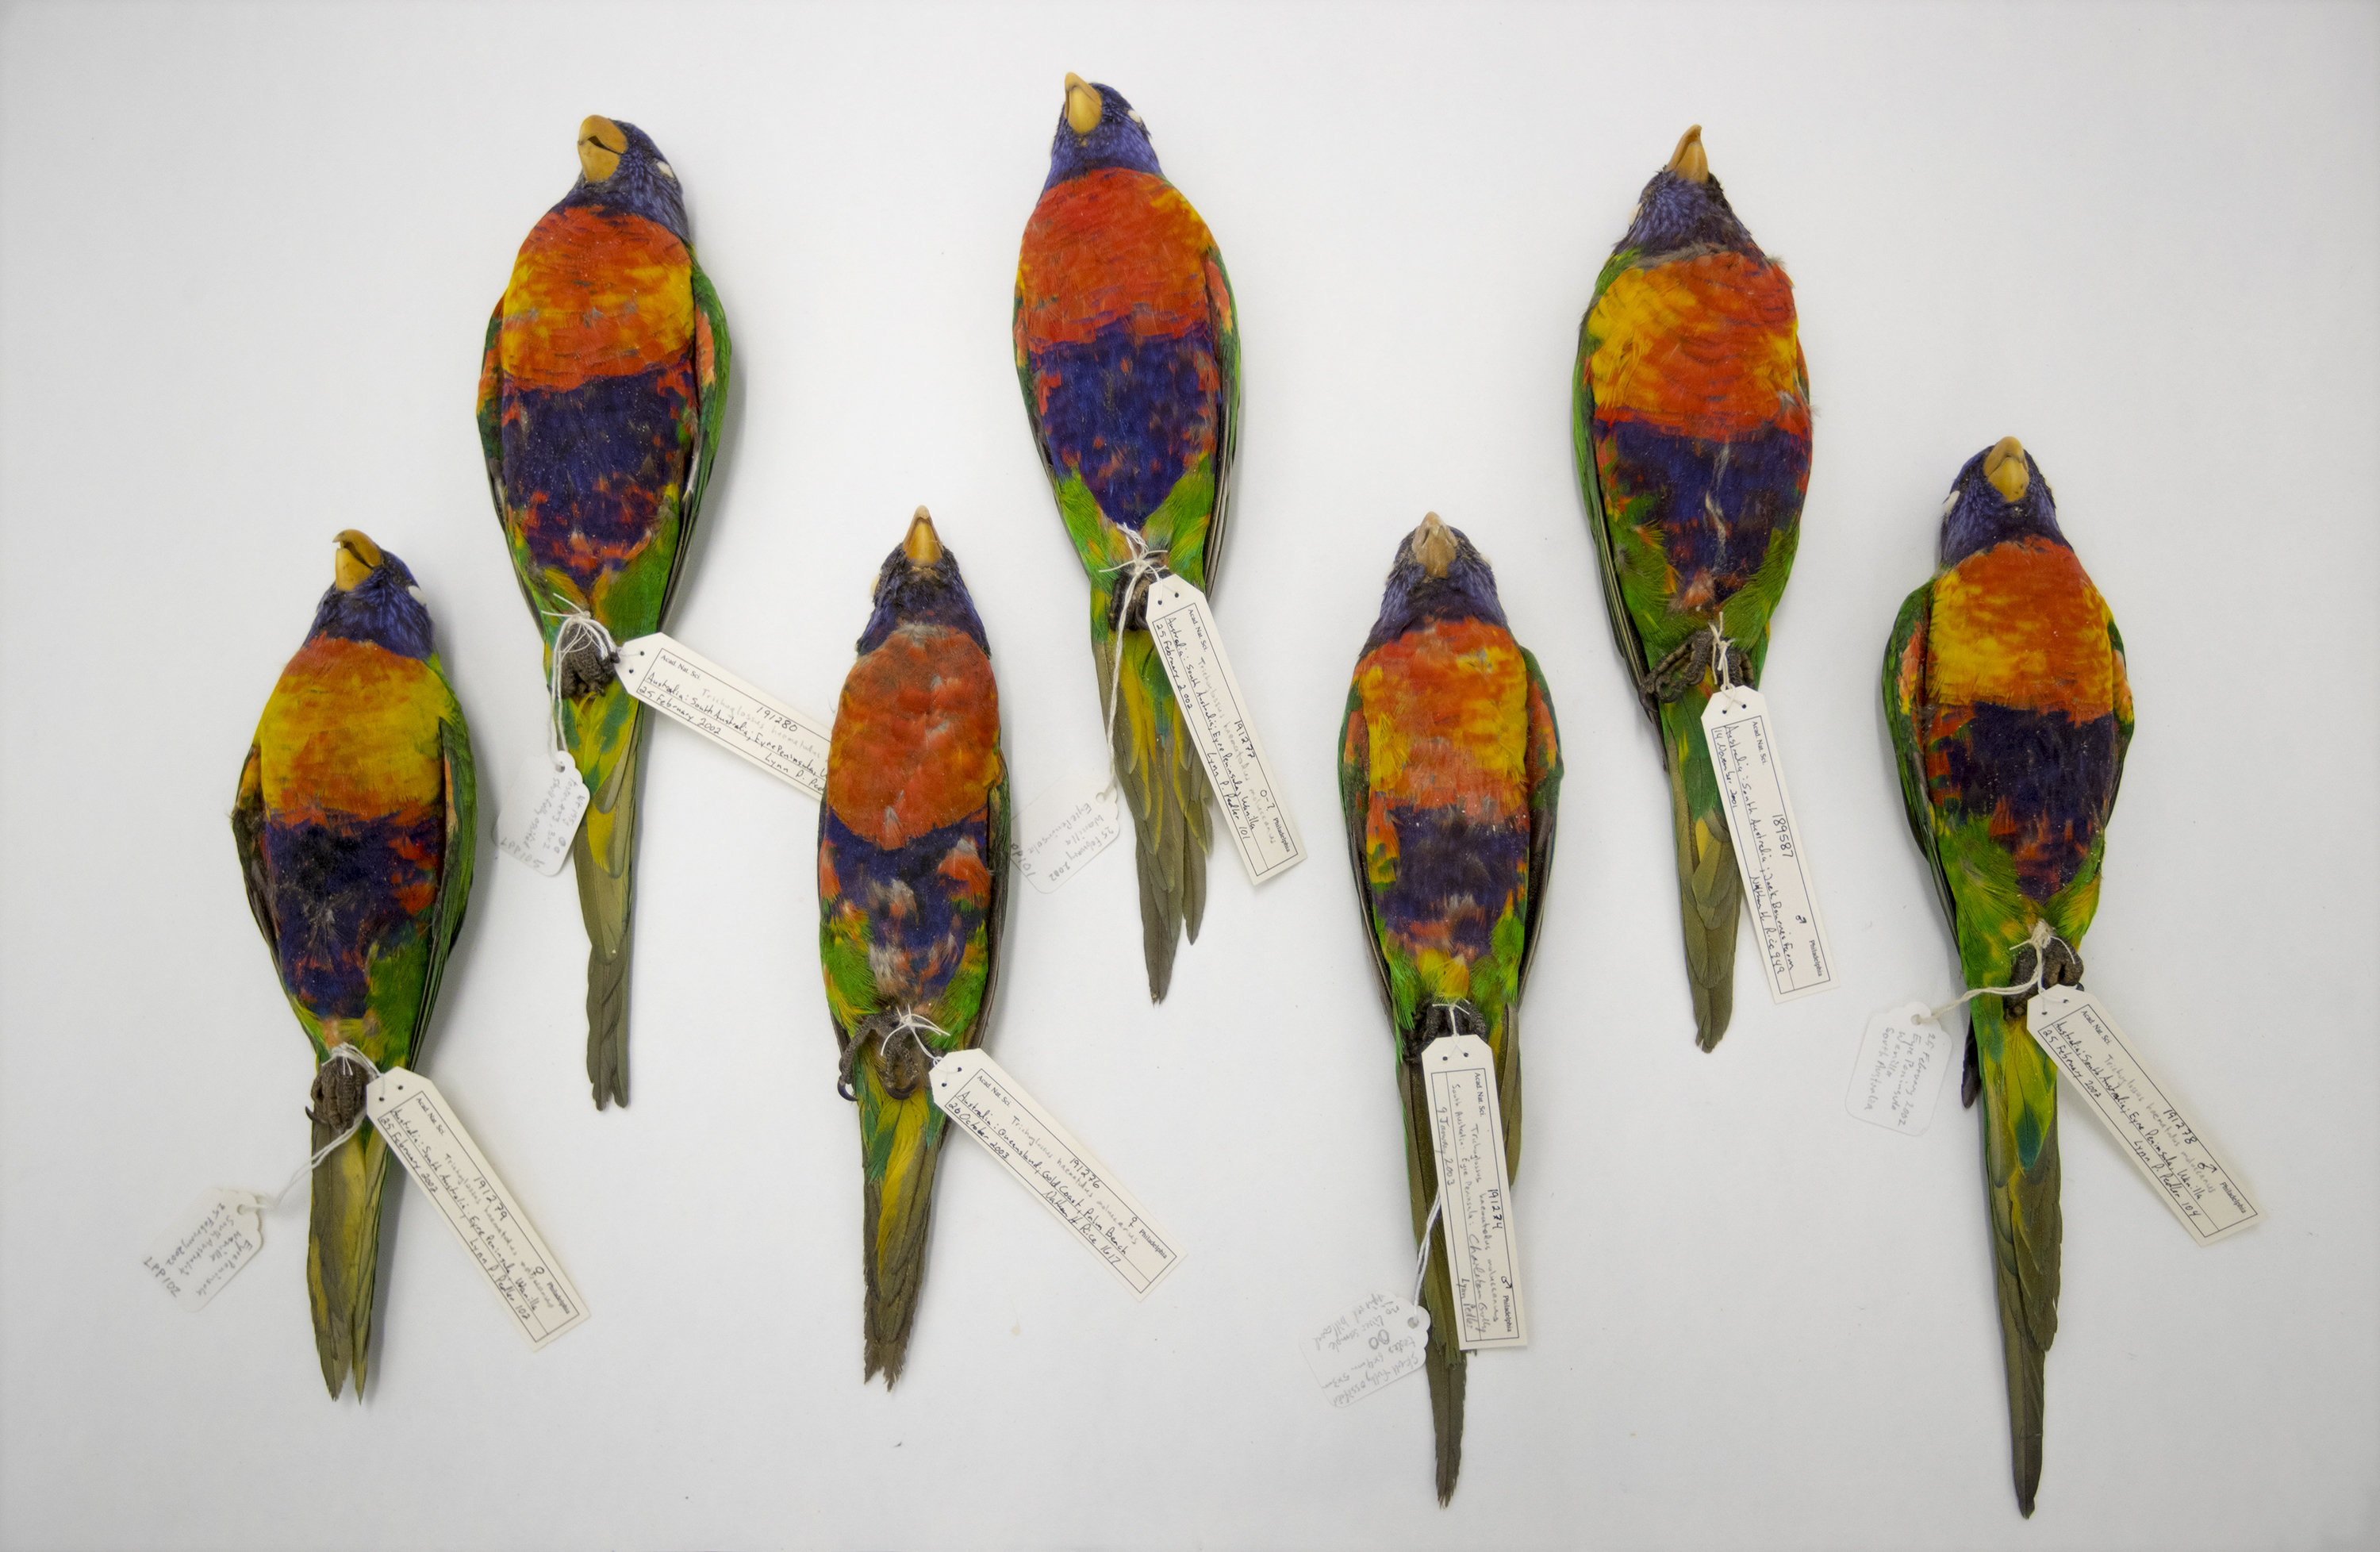 Rainbow lorikeet specimens from the Academy of Natural Science's collection that chemist Paula Zelanko used to measure the carbon and nitrogen stable isotopes in their feathers.